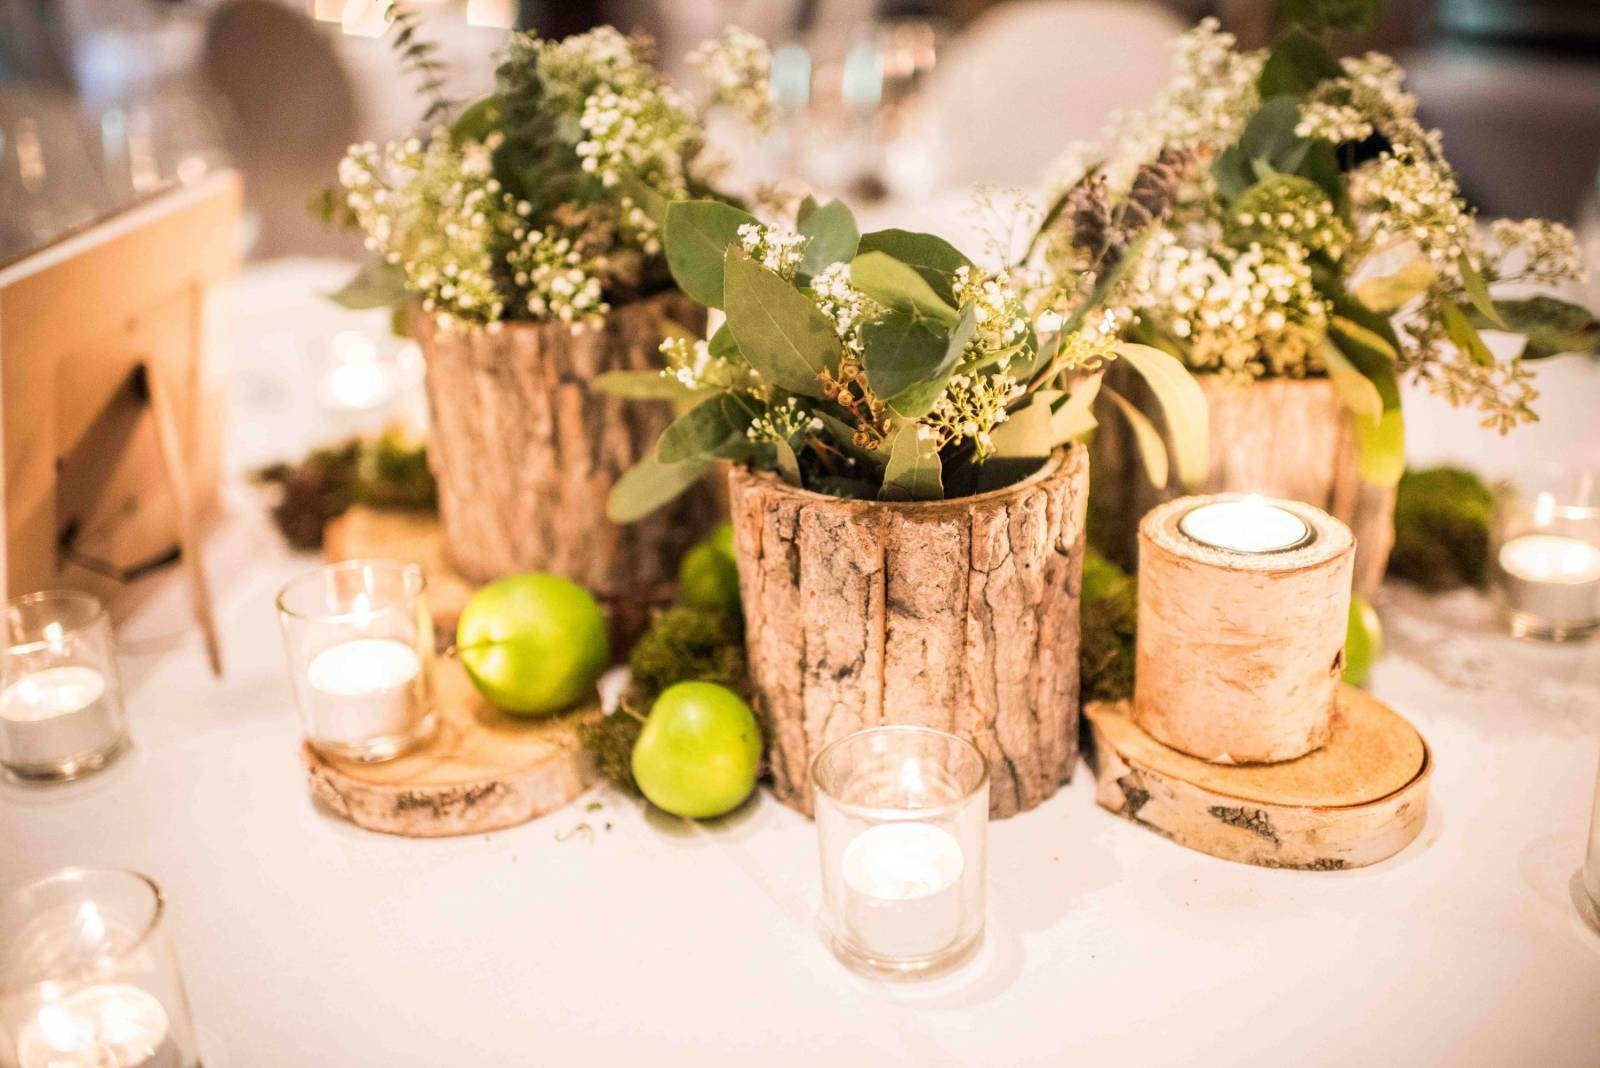 Carpe Diem Bloemen & Decoratie - House of Weddings  - 23